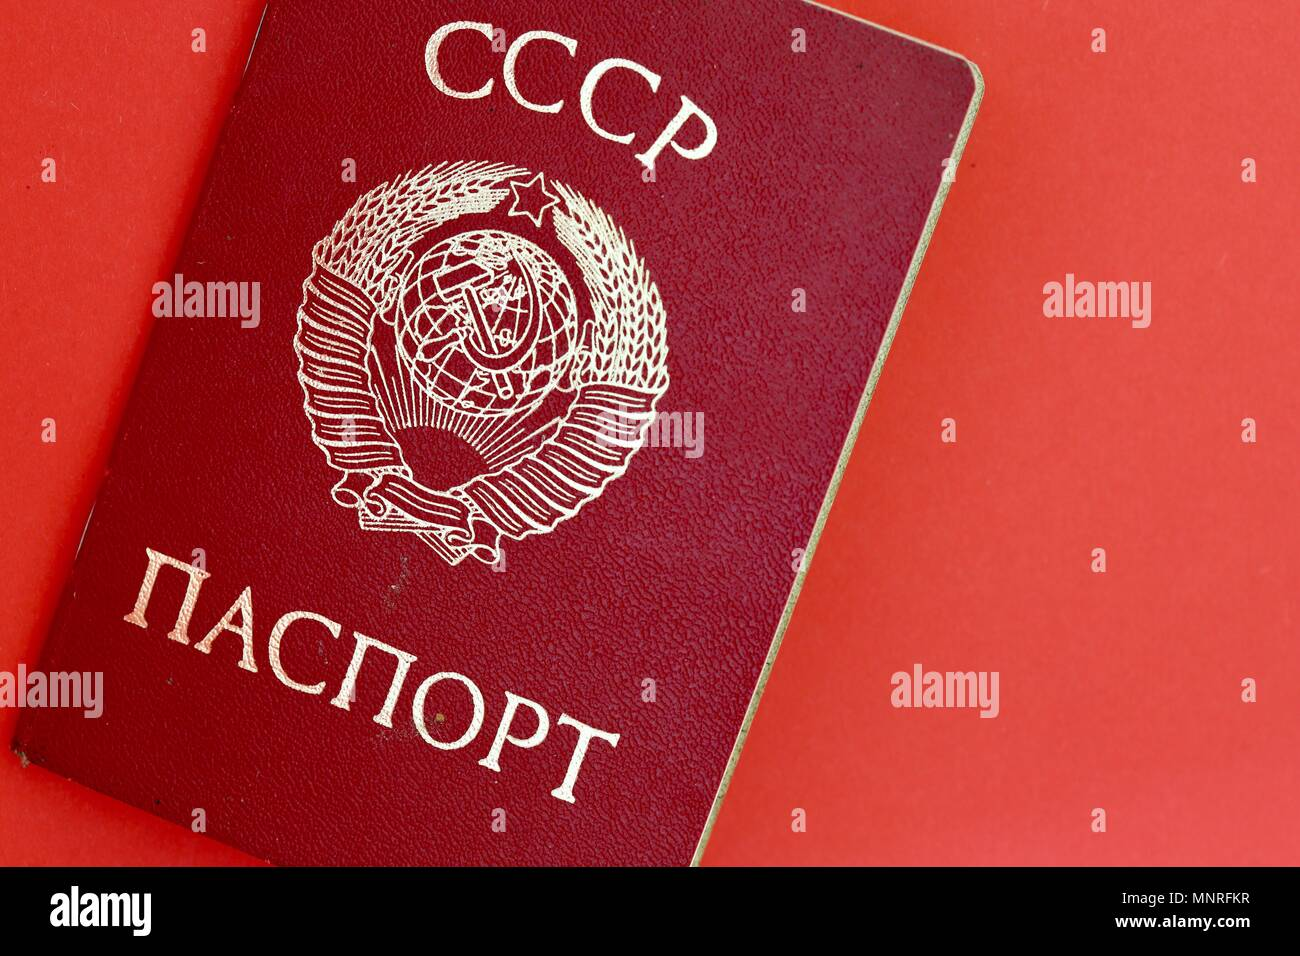 CCCP / USSR / soviet passport from the 1970s issued to a male citizen. - Stock Image